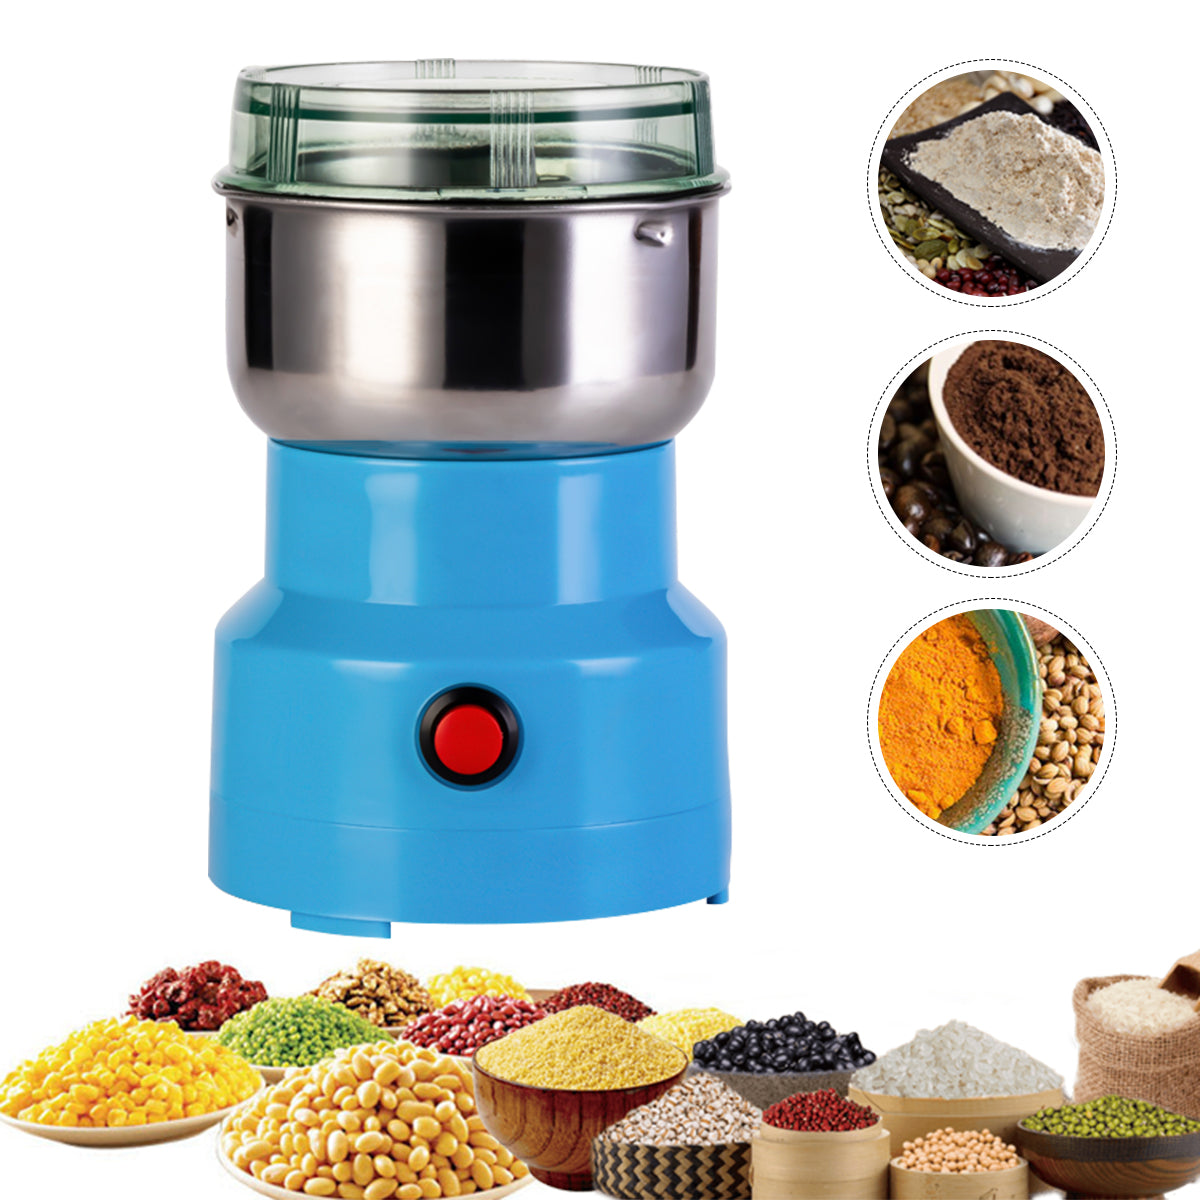 Portable Electric Cereals Grain Grinder Smash Machine for Nut Coffee Bean Spice Grinding